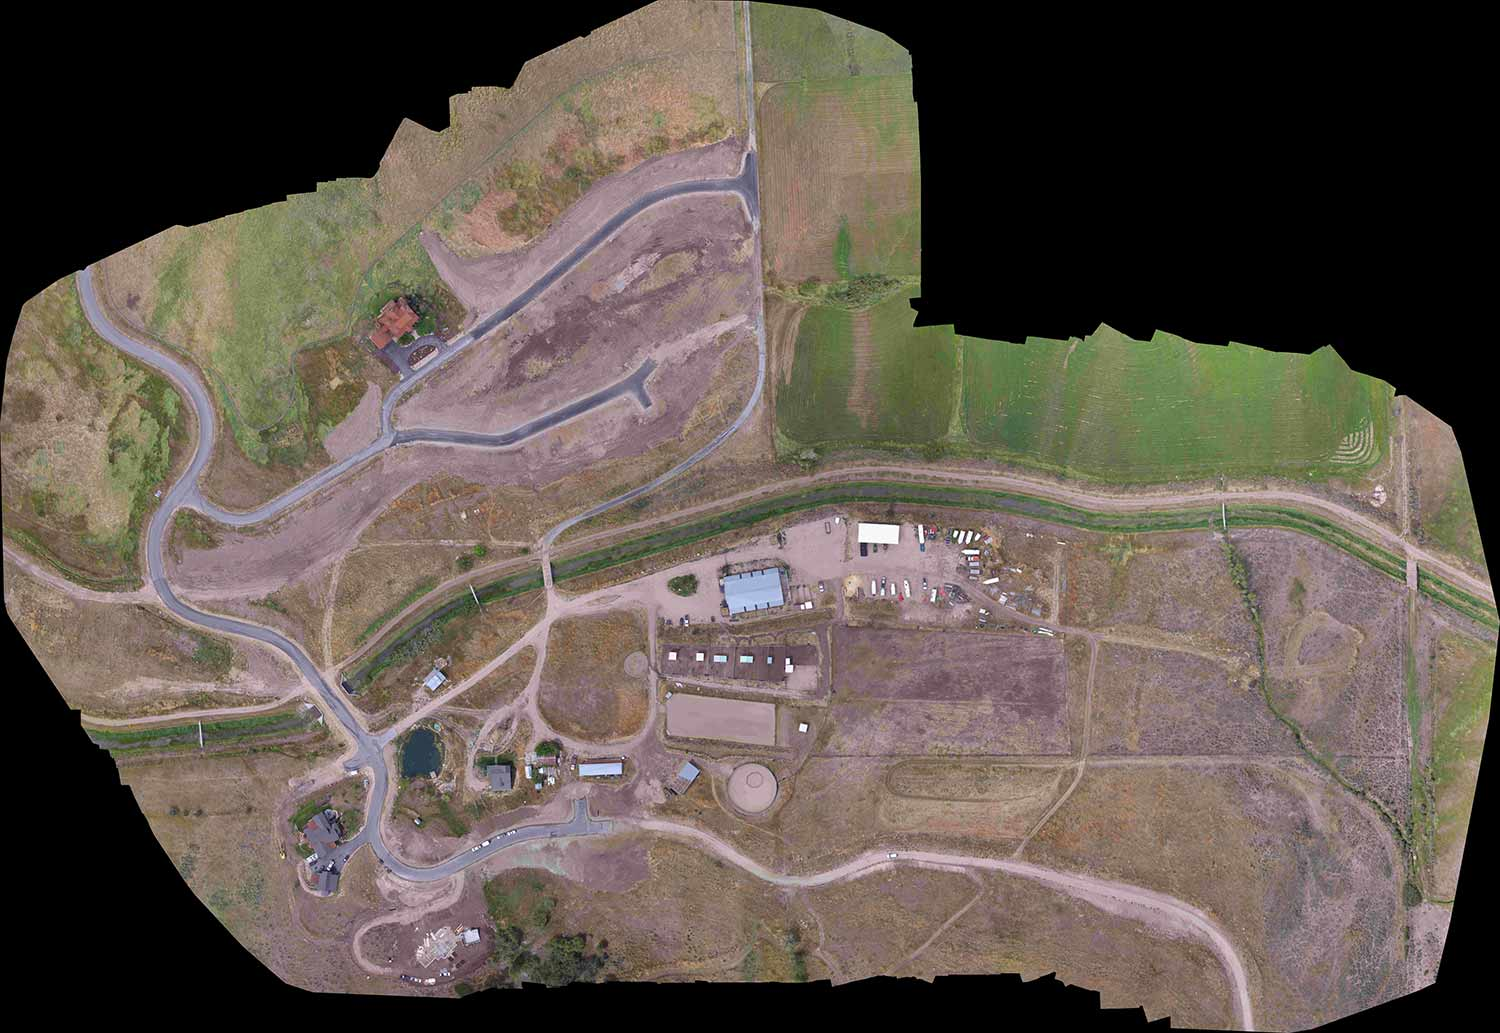 Drone Survey Image